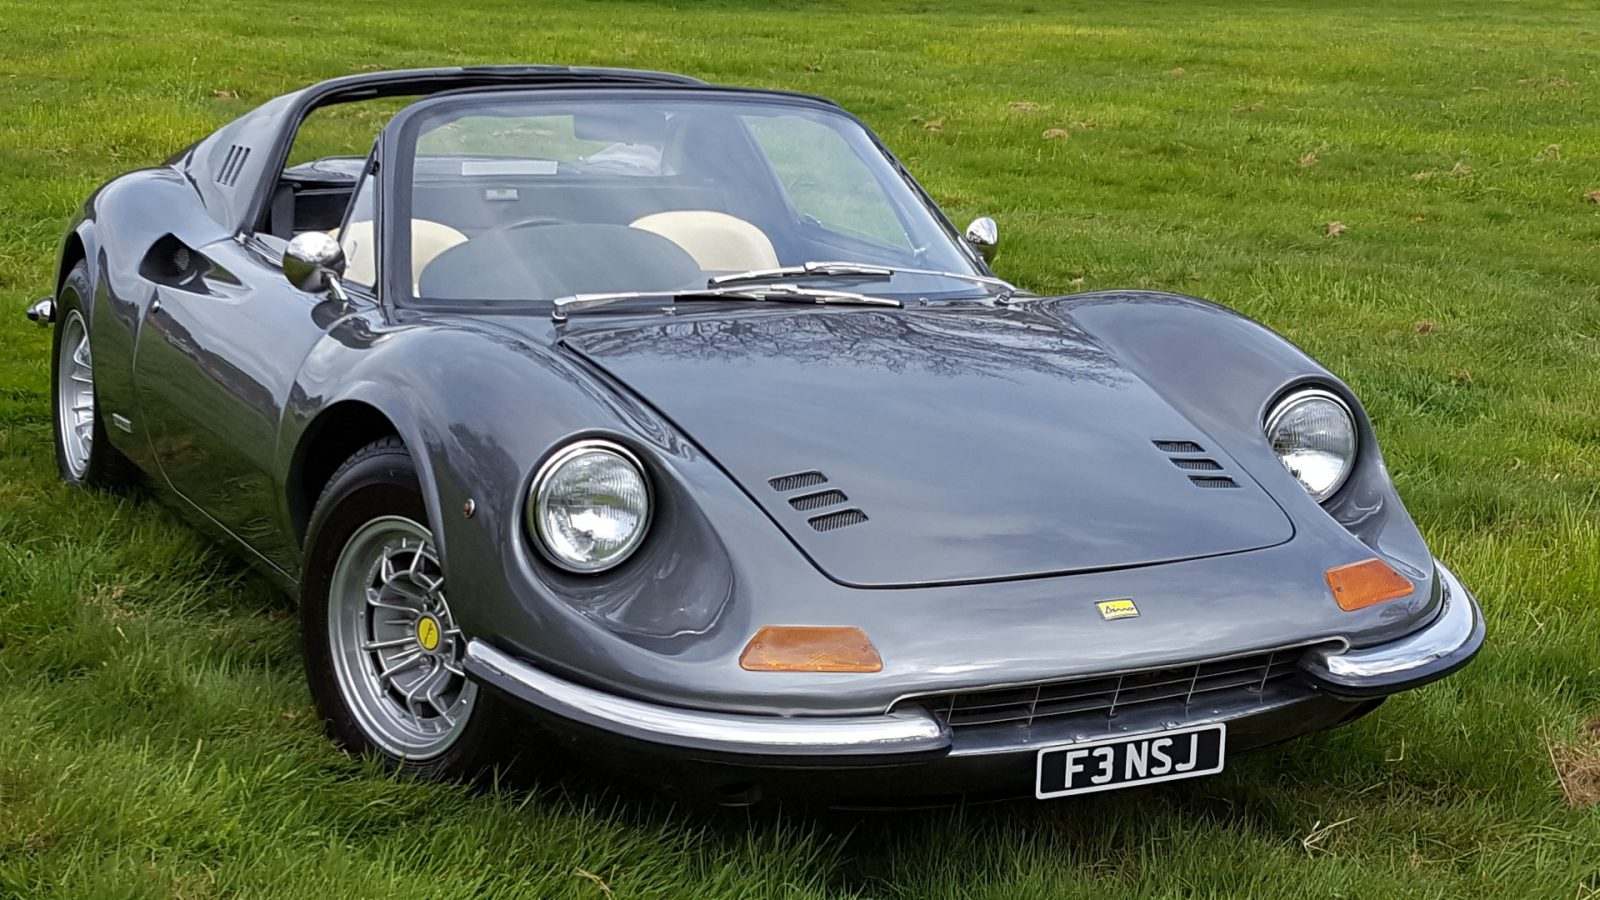 Ferrari Dino Replica Sold By Ourselves 1st Choice Body Works